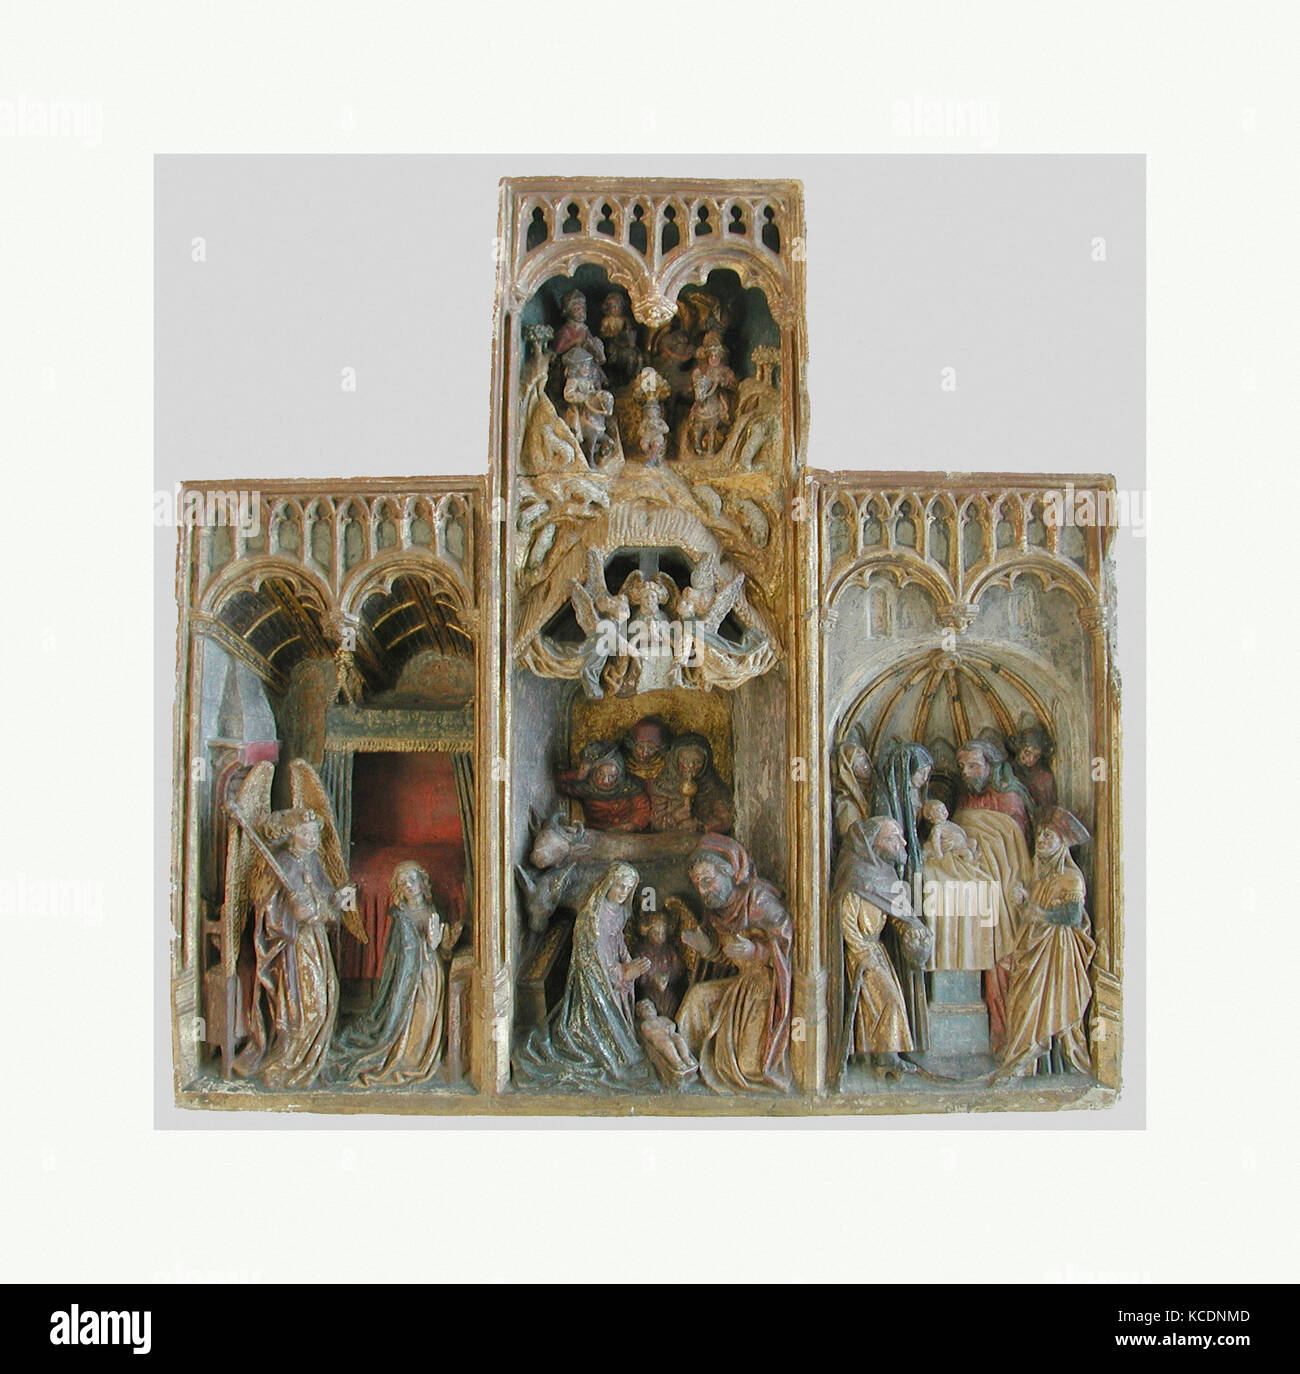 Altarpiece with Scenes of the Infancy of Christ, late 15th century - Stock Image